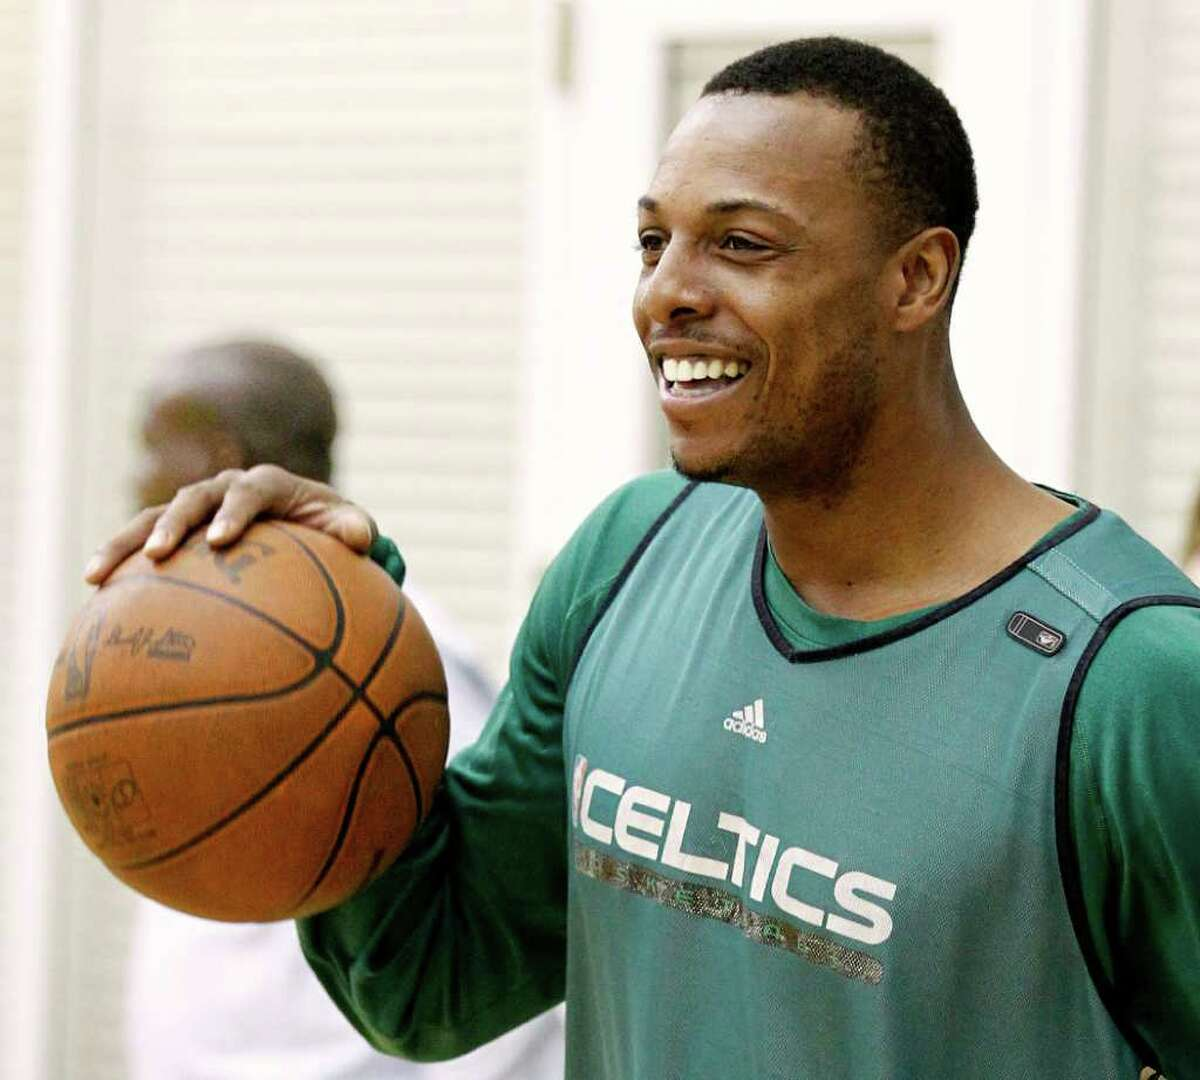 Boston Celtics' Paul Pierce smiles at teammates before practice in Waltham, Mass. Wednesday, April 27, 2011. (AP Photo/Winslow Townson)